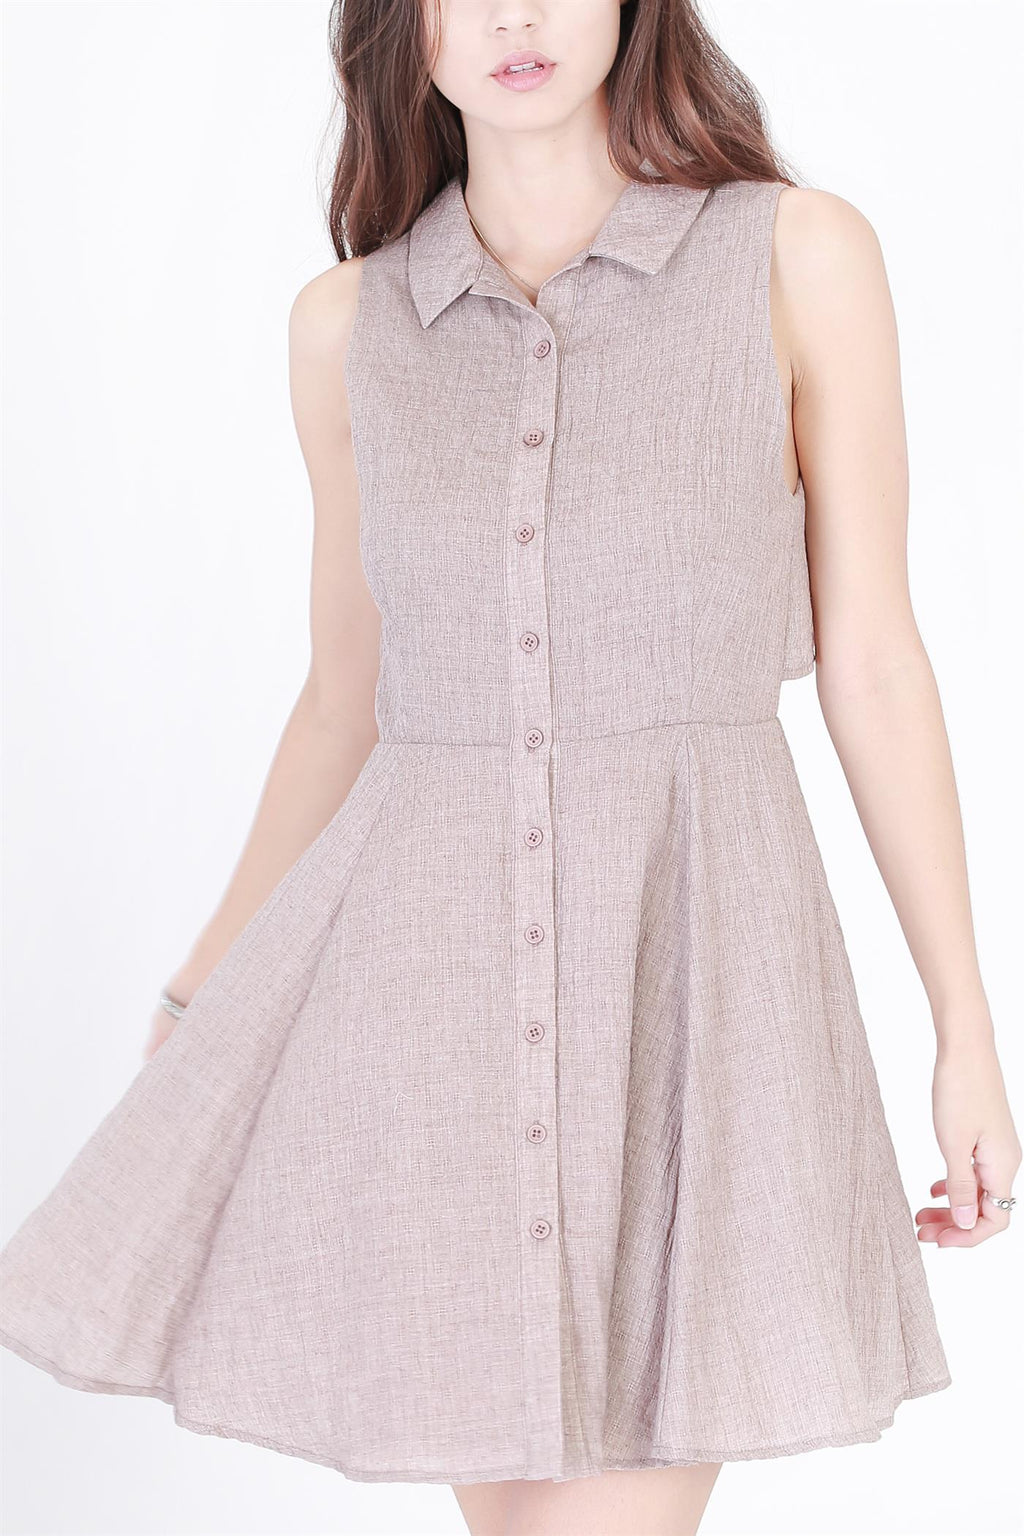 Sleeveless Button Down Frock Dress